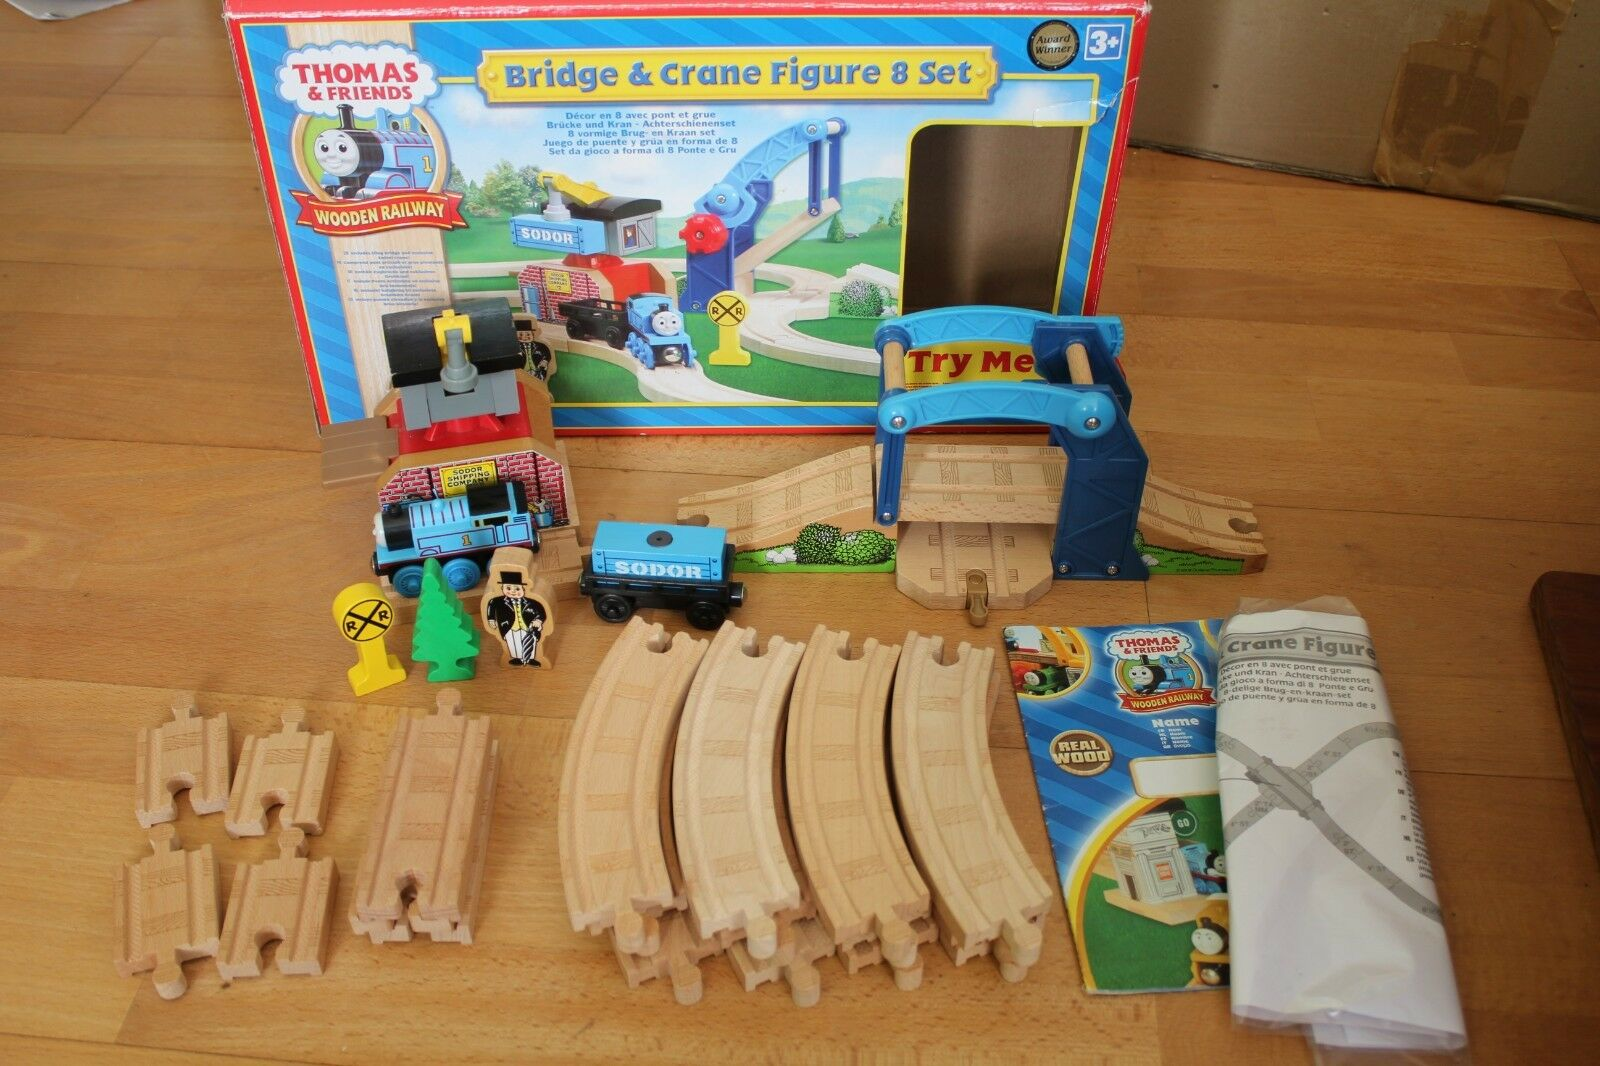 THOMAS the Tank Engine Bridge & Crane Figure 8 Set, Holzen railway Holzeisenbahn